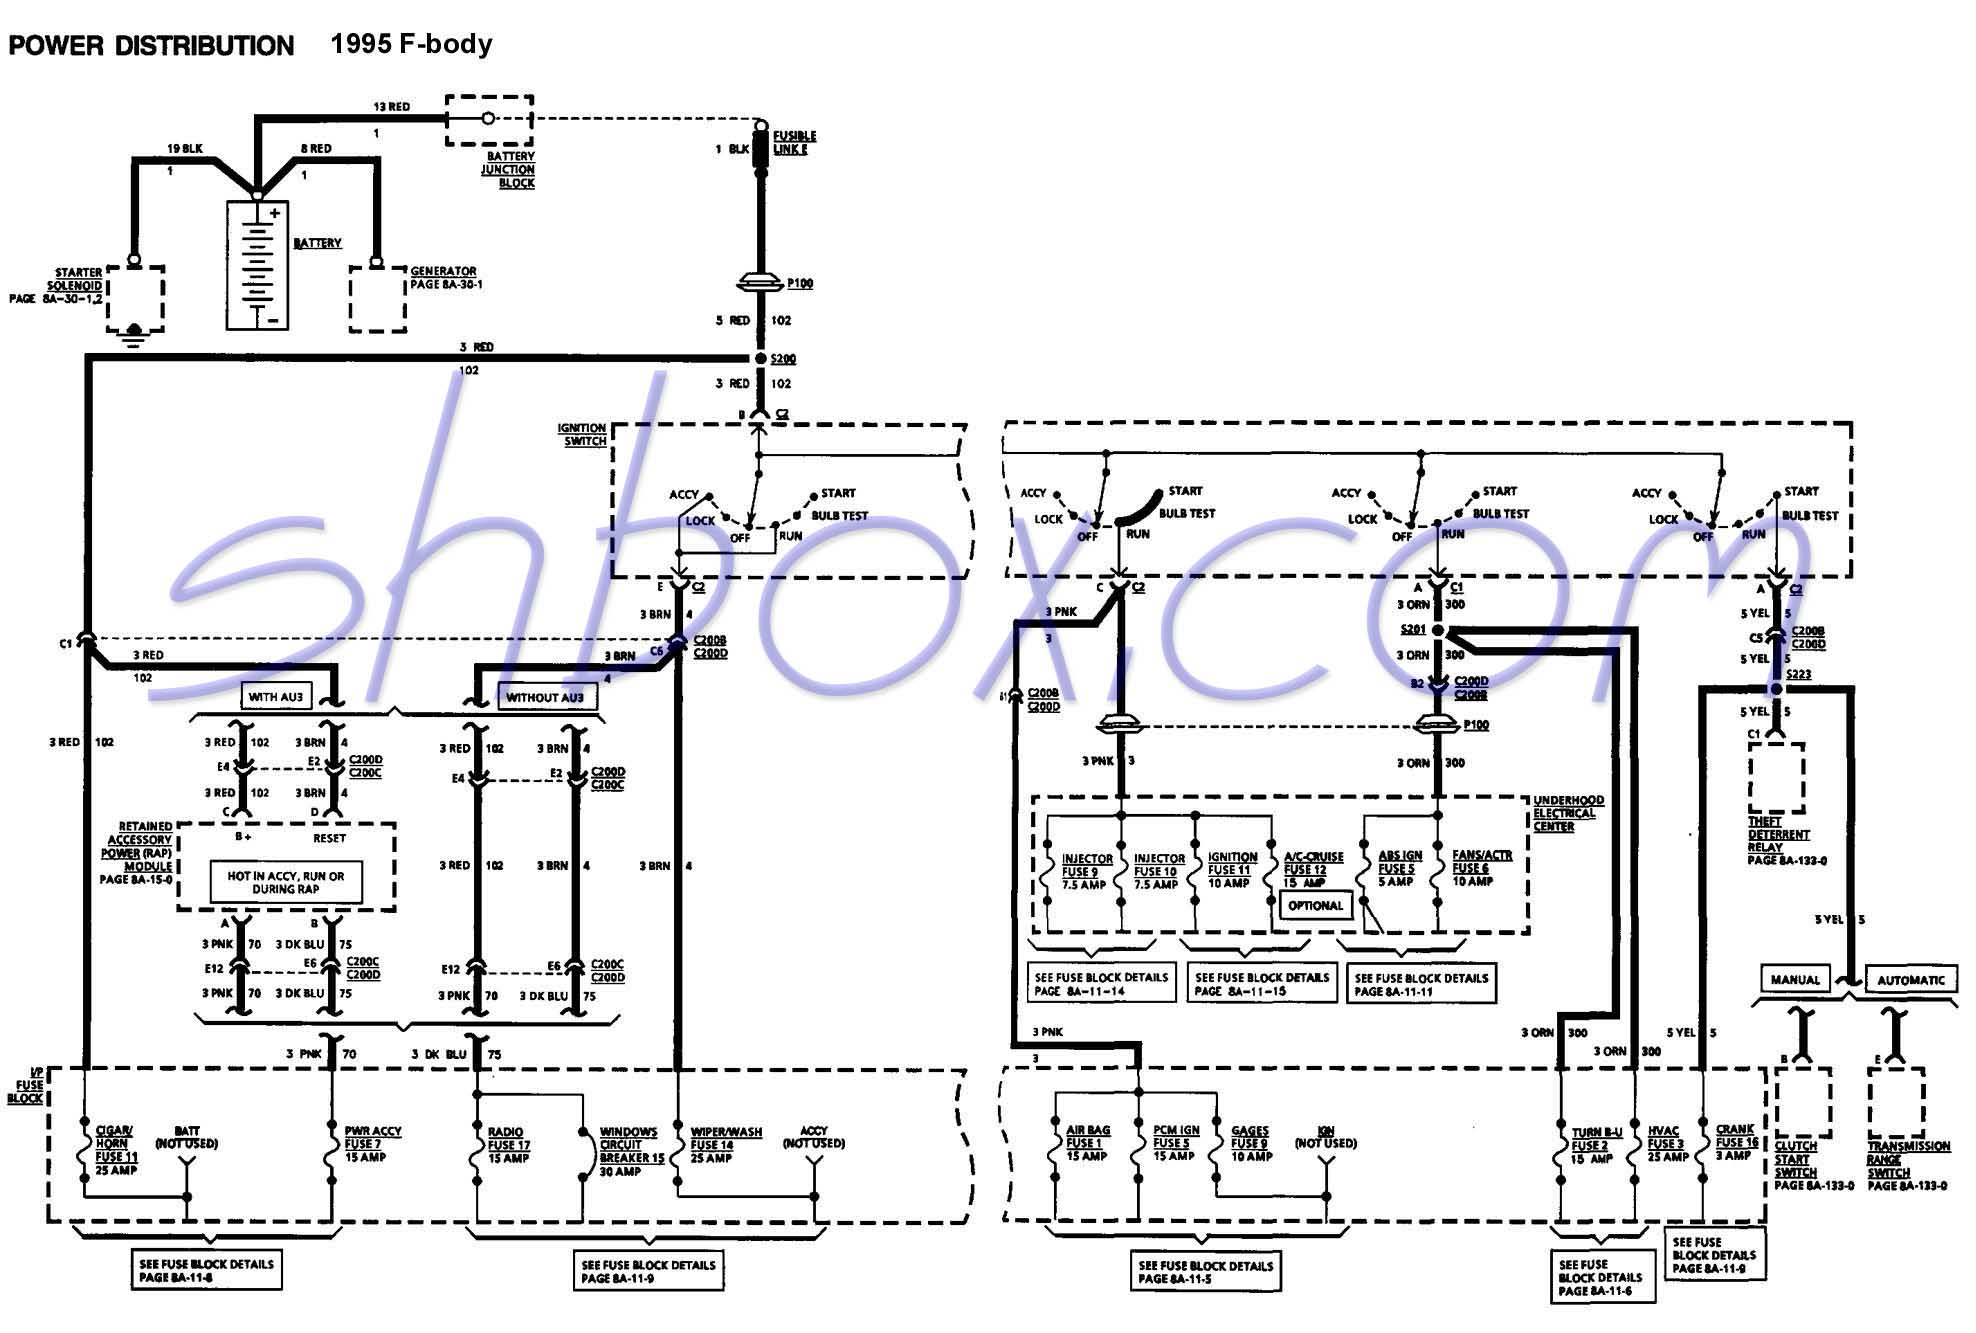 ignswschematic 4th gen lt1 f body tech aids 1995 camaro wiring diagram at edmiracle.co